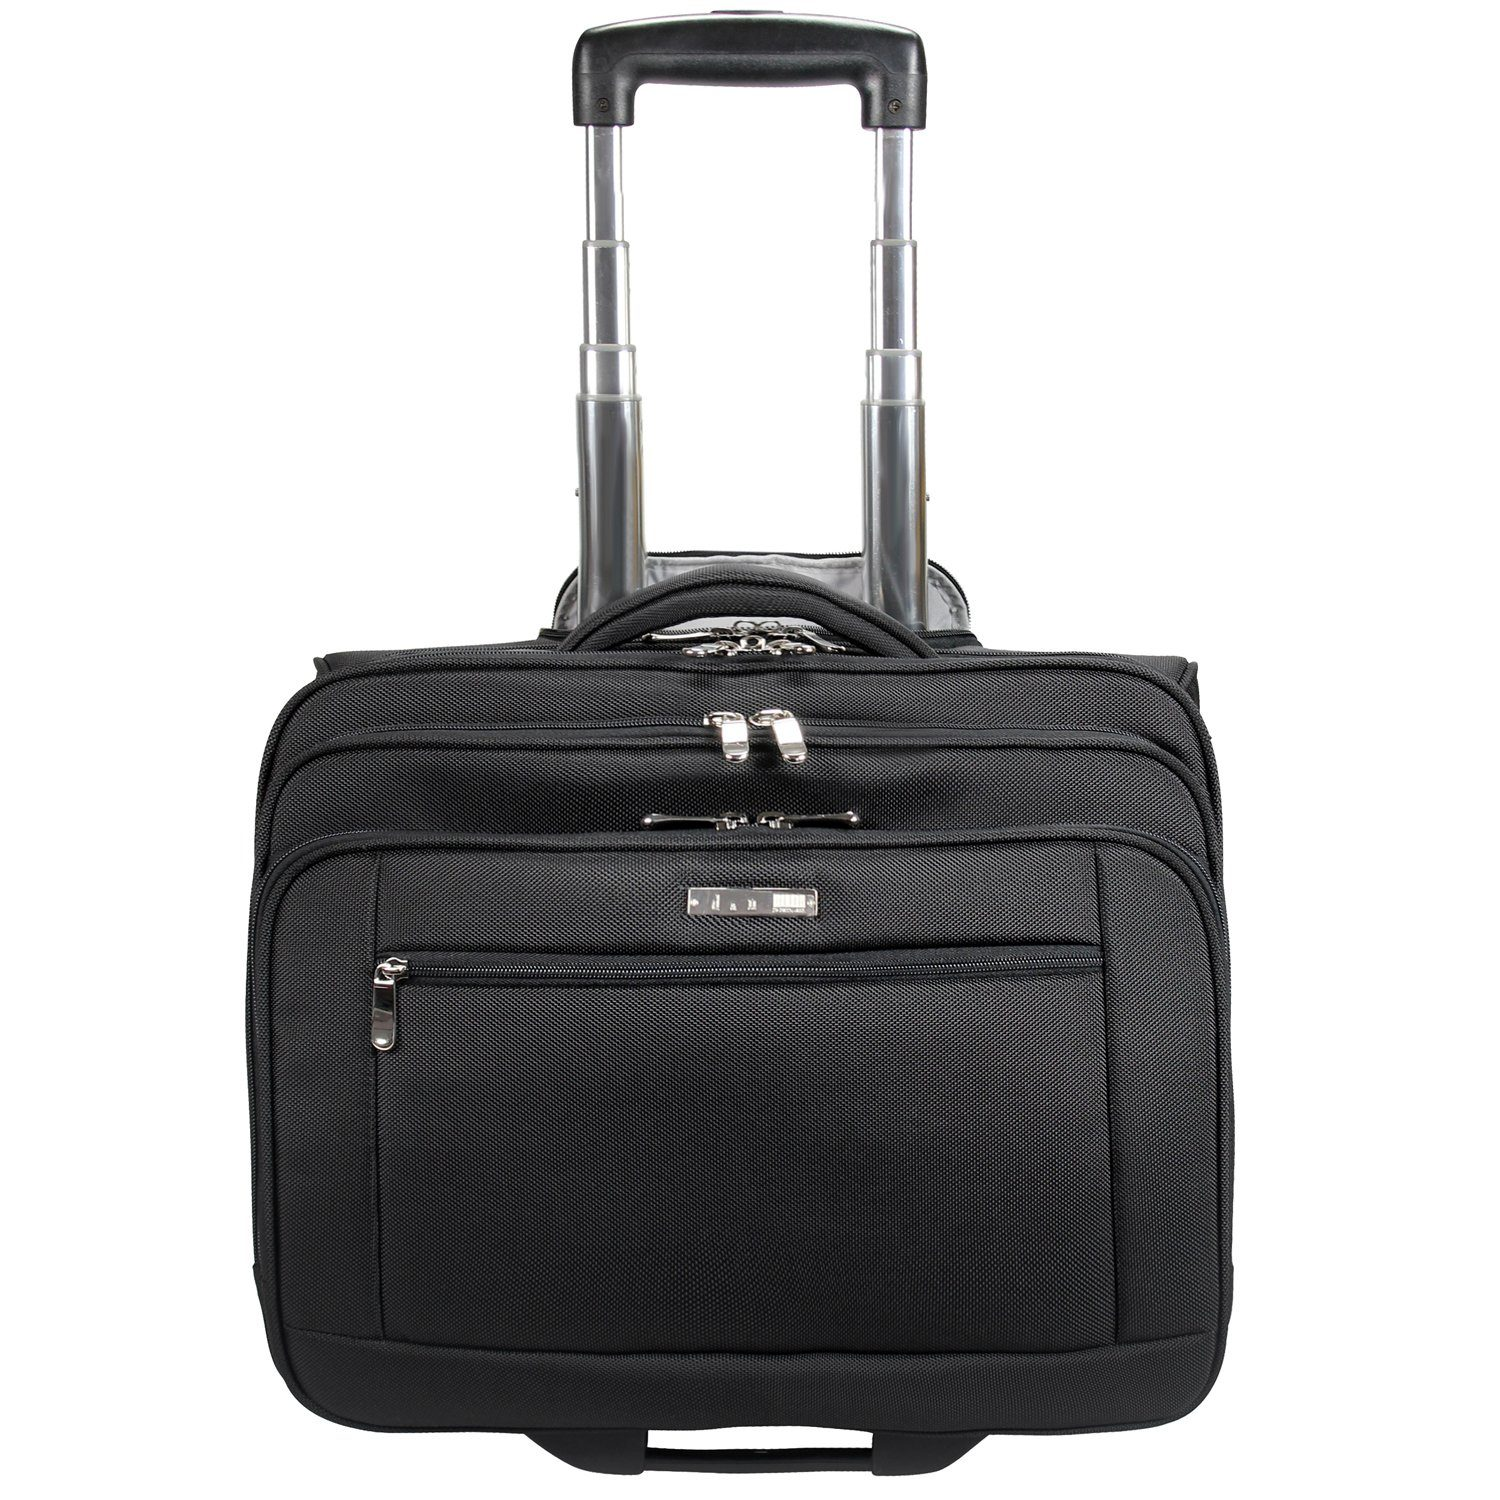 d & n Bussiness & Travel Business-Trolley 42 cm Laptopfach